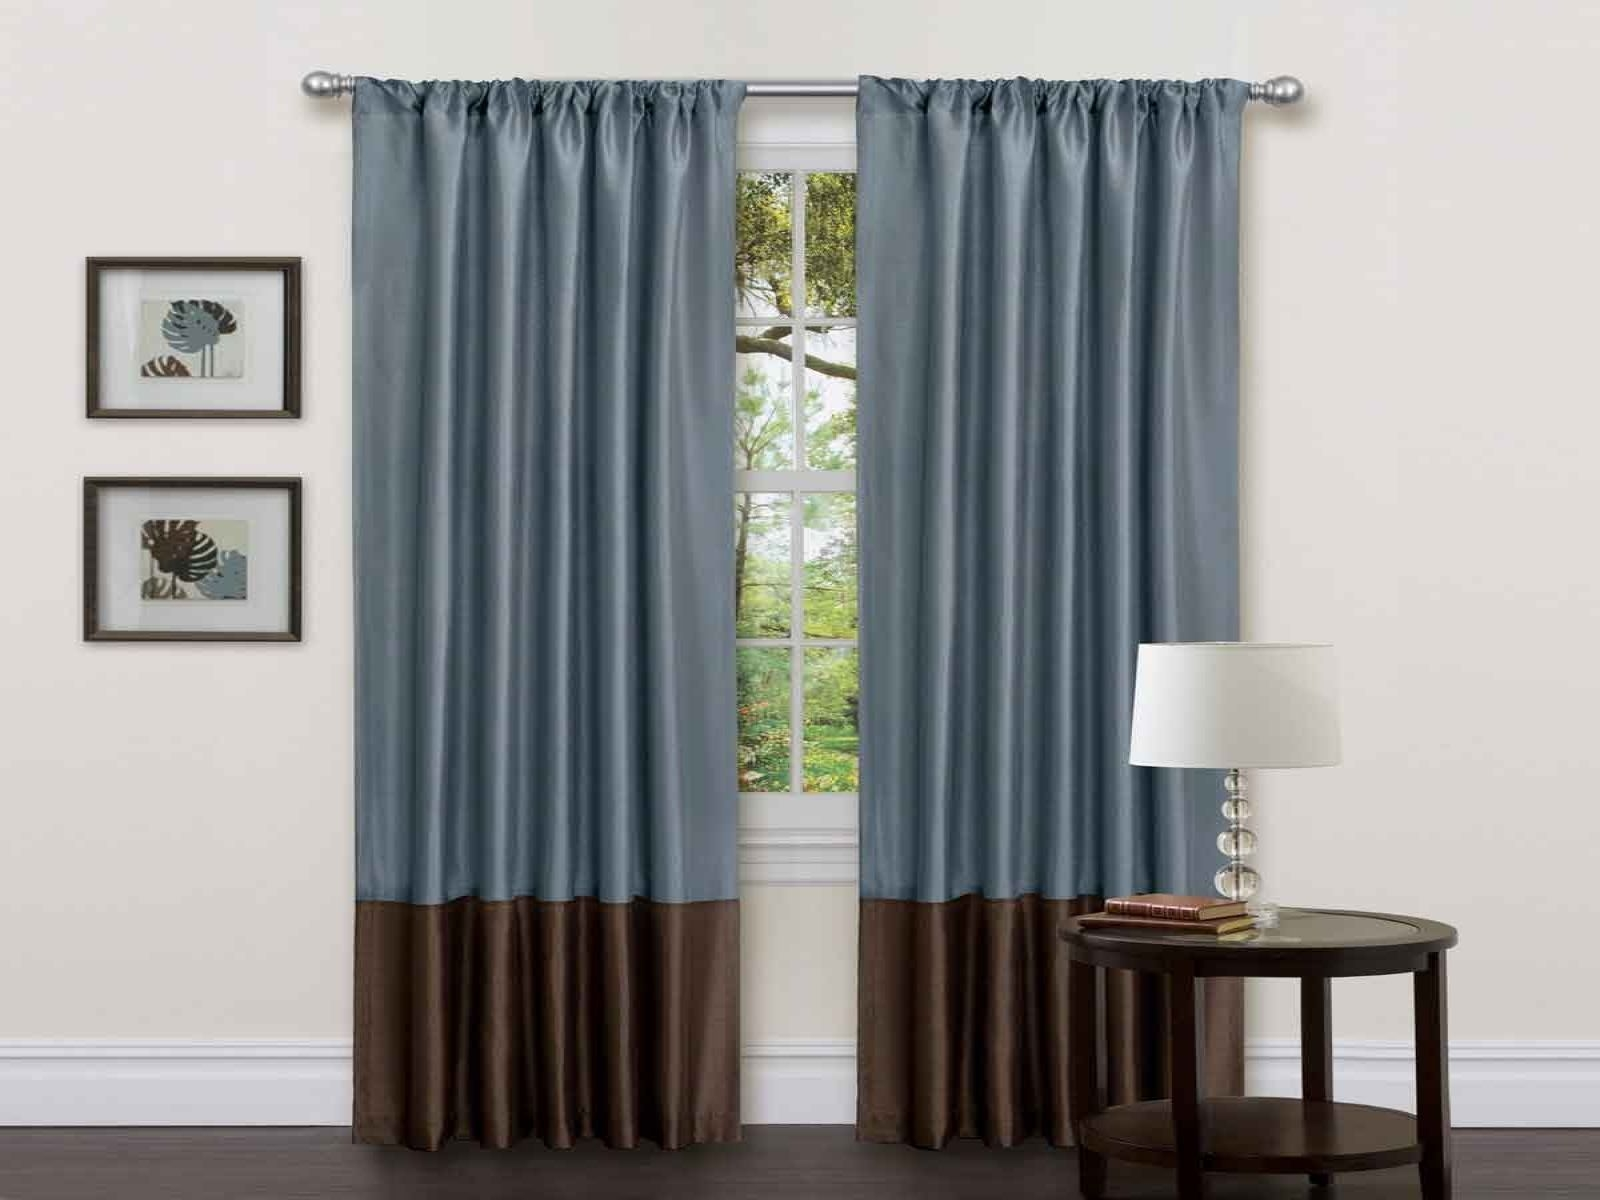 Modern Curtain Designs For Living Room 02